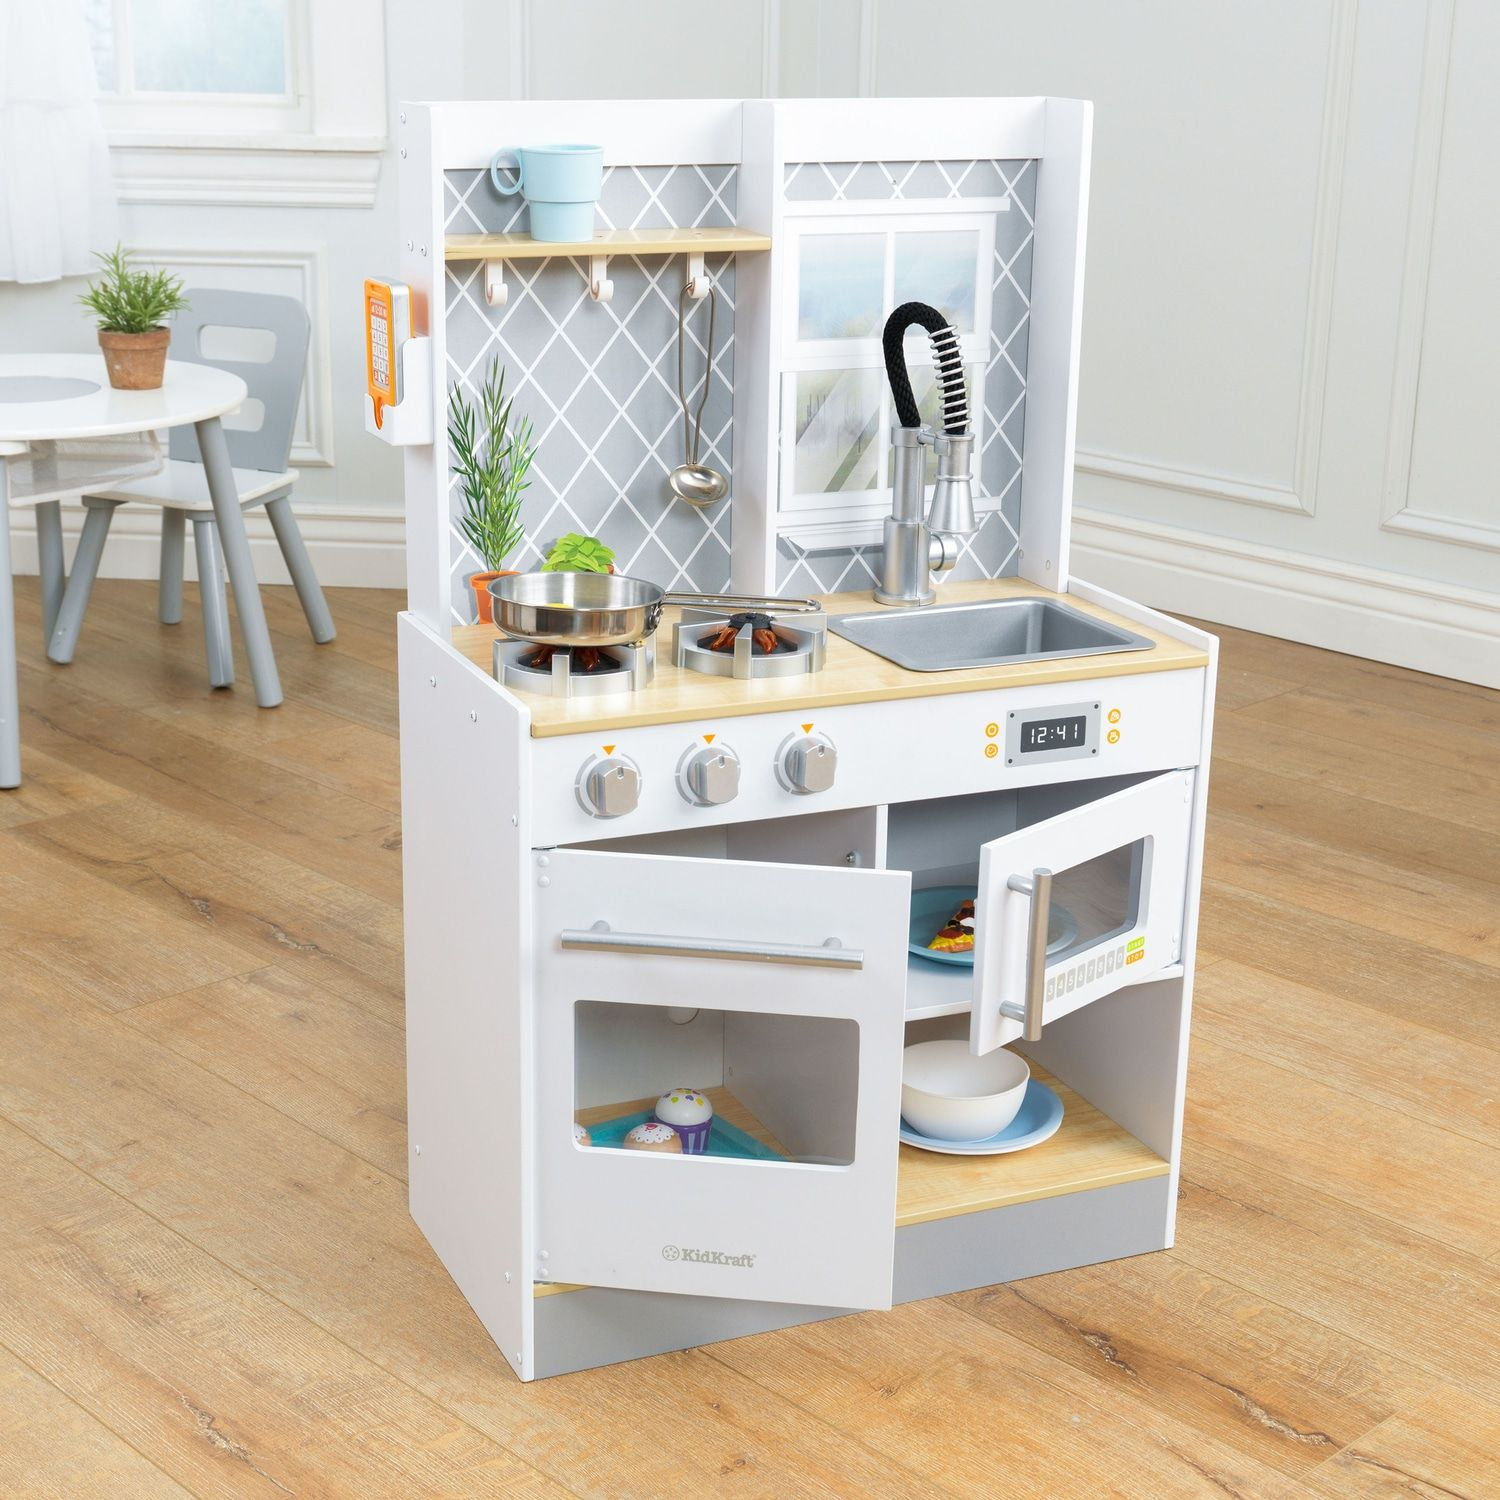 KidKraft Let's Cook Wooden Play Kitchen in 2019 Wooden